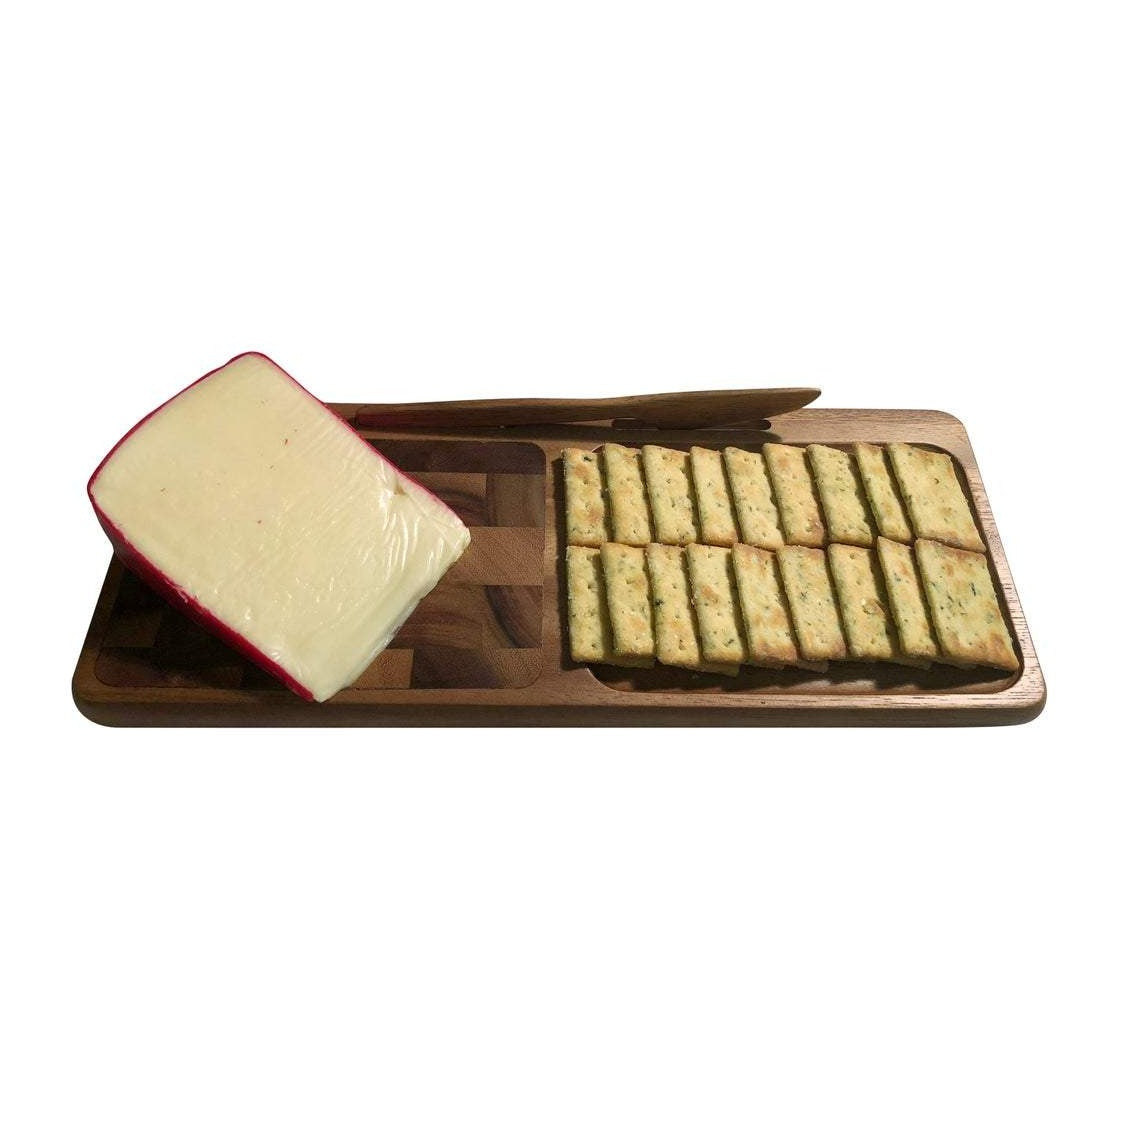 Acacia Wood Charcuterie Board with Cheese Crackers and Knife